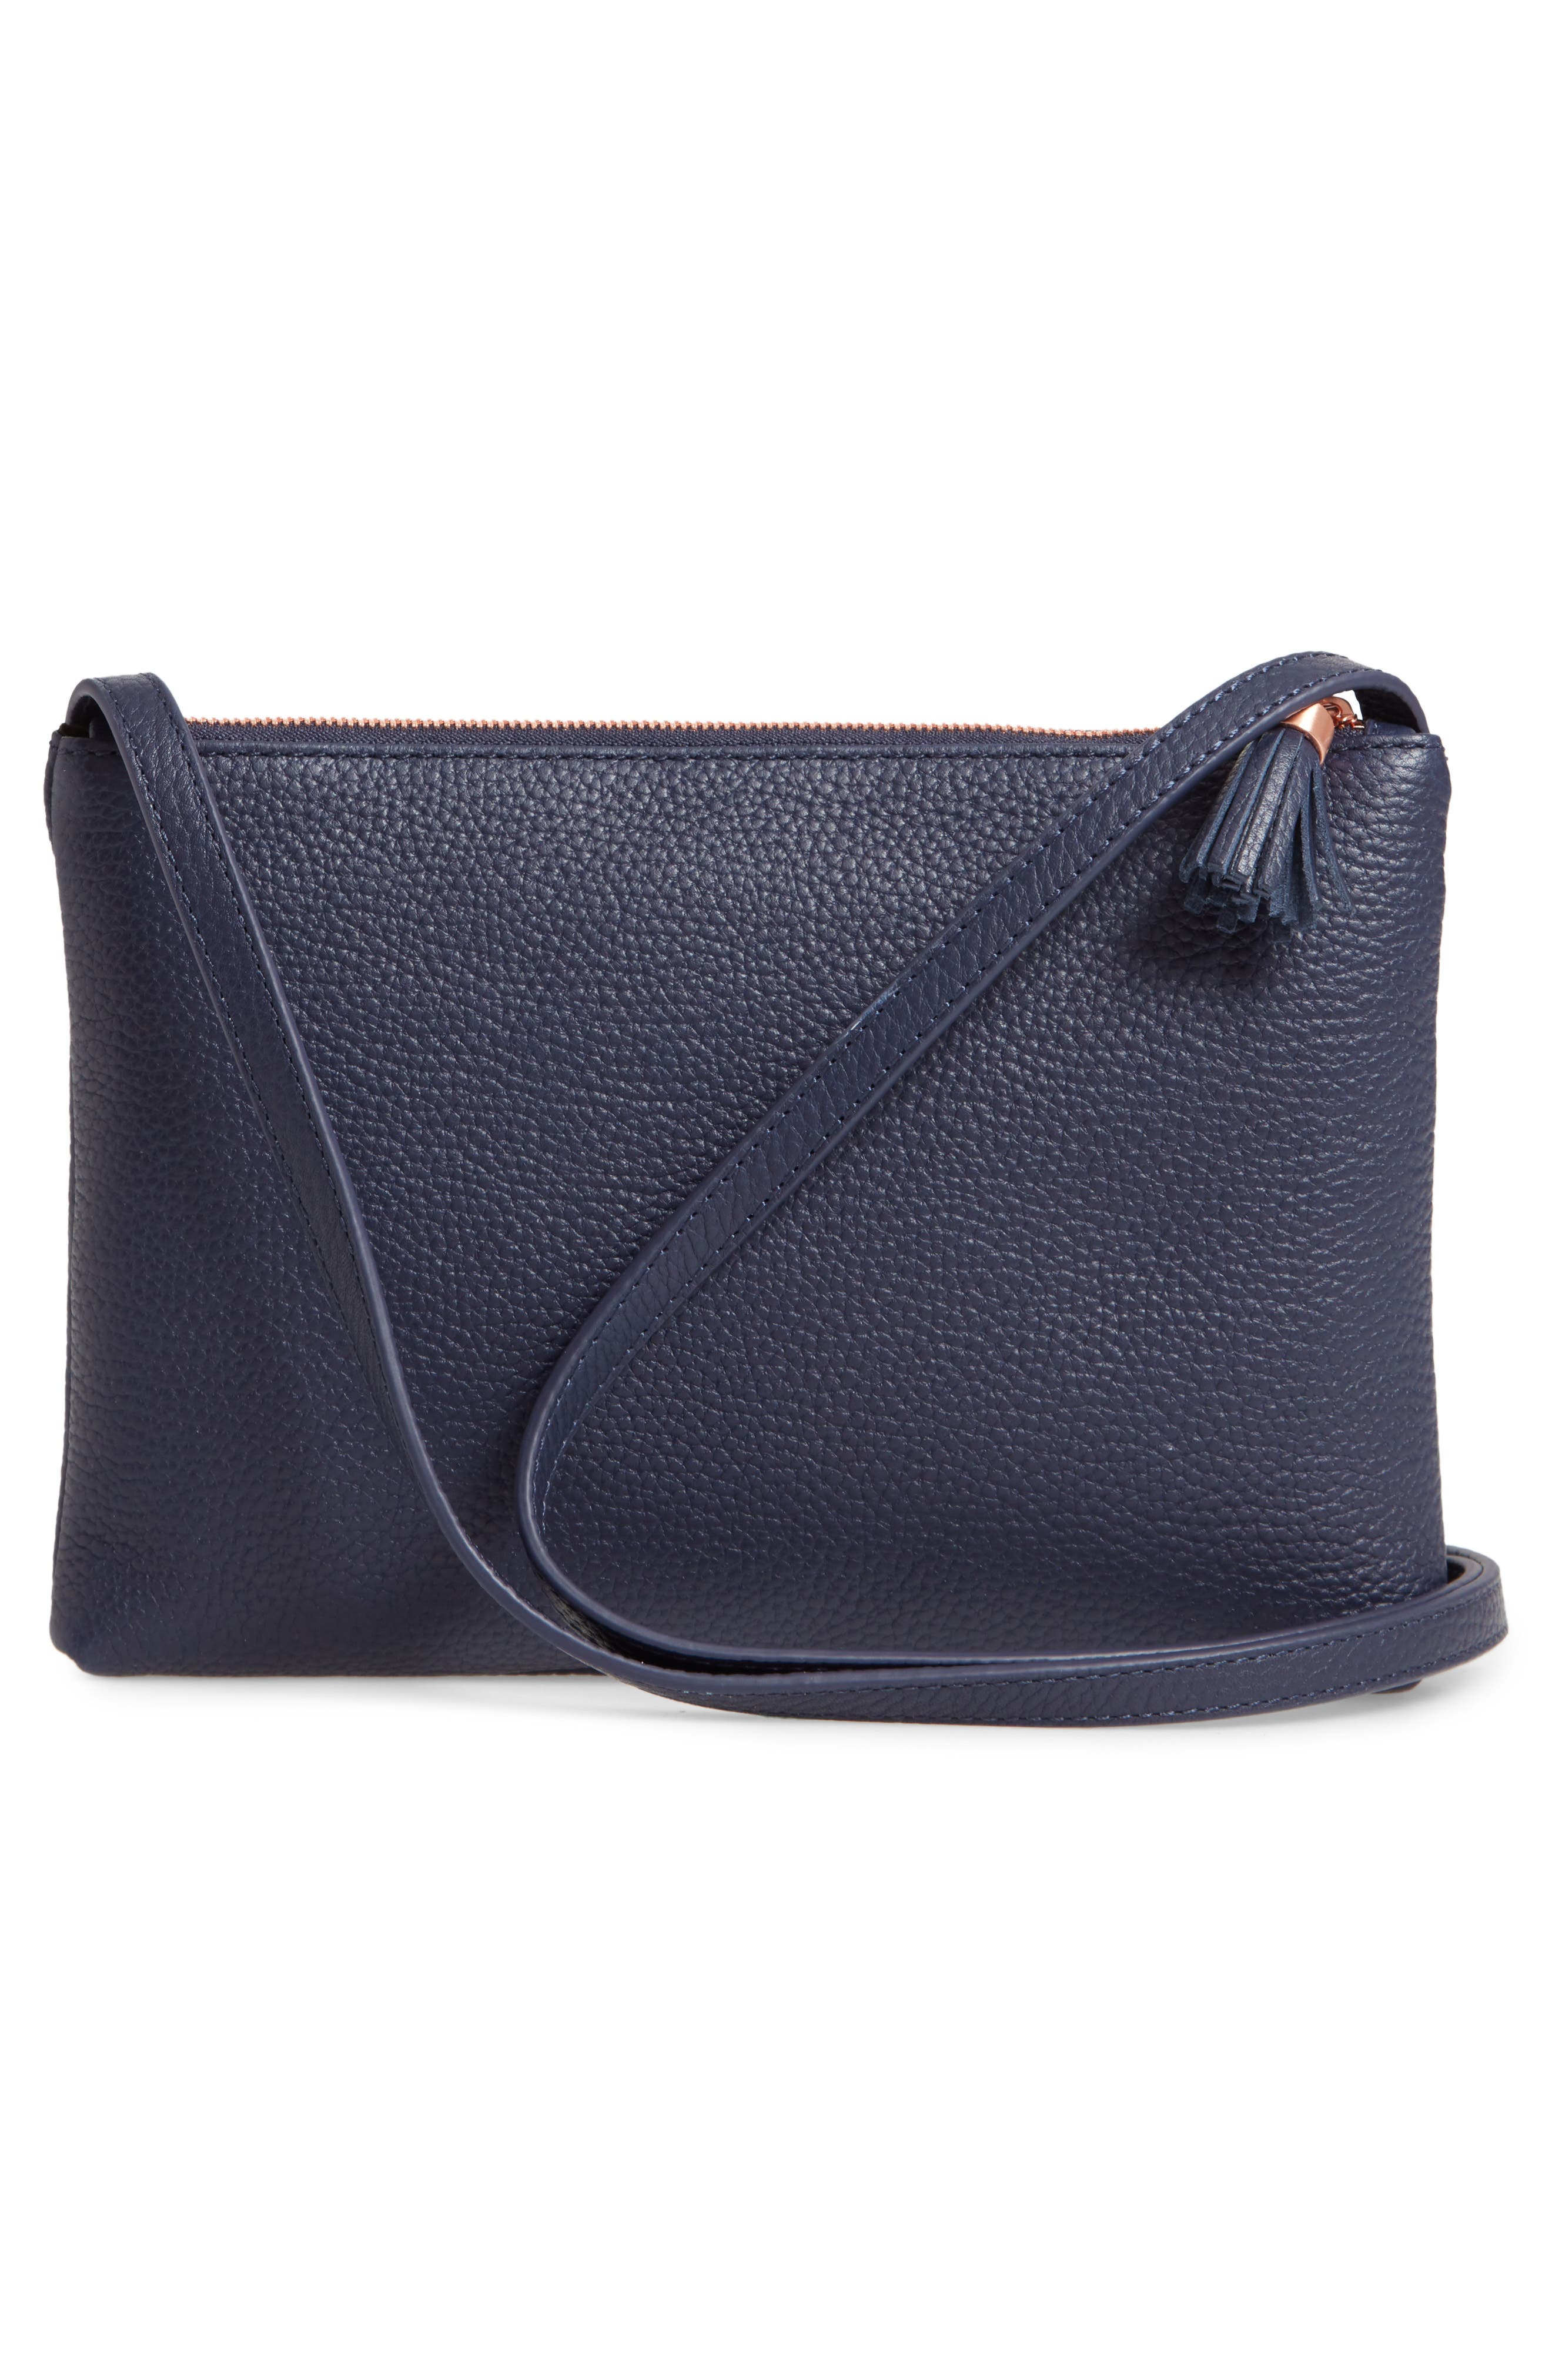 TED BAKER LONDON, Maceyy Double Zip Leather Crossbody Bag, Alternate thumbnail 4, color, NAVY